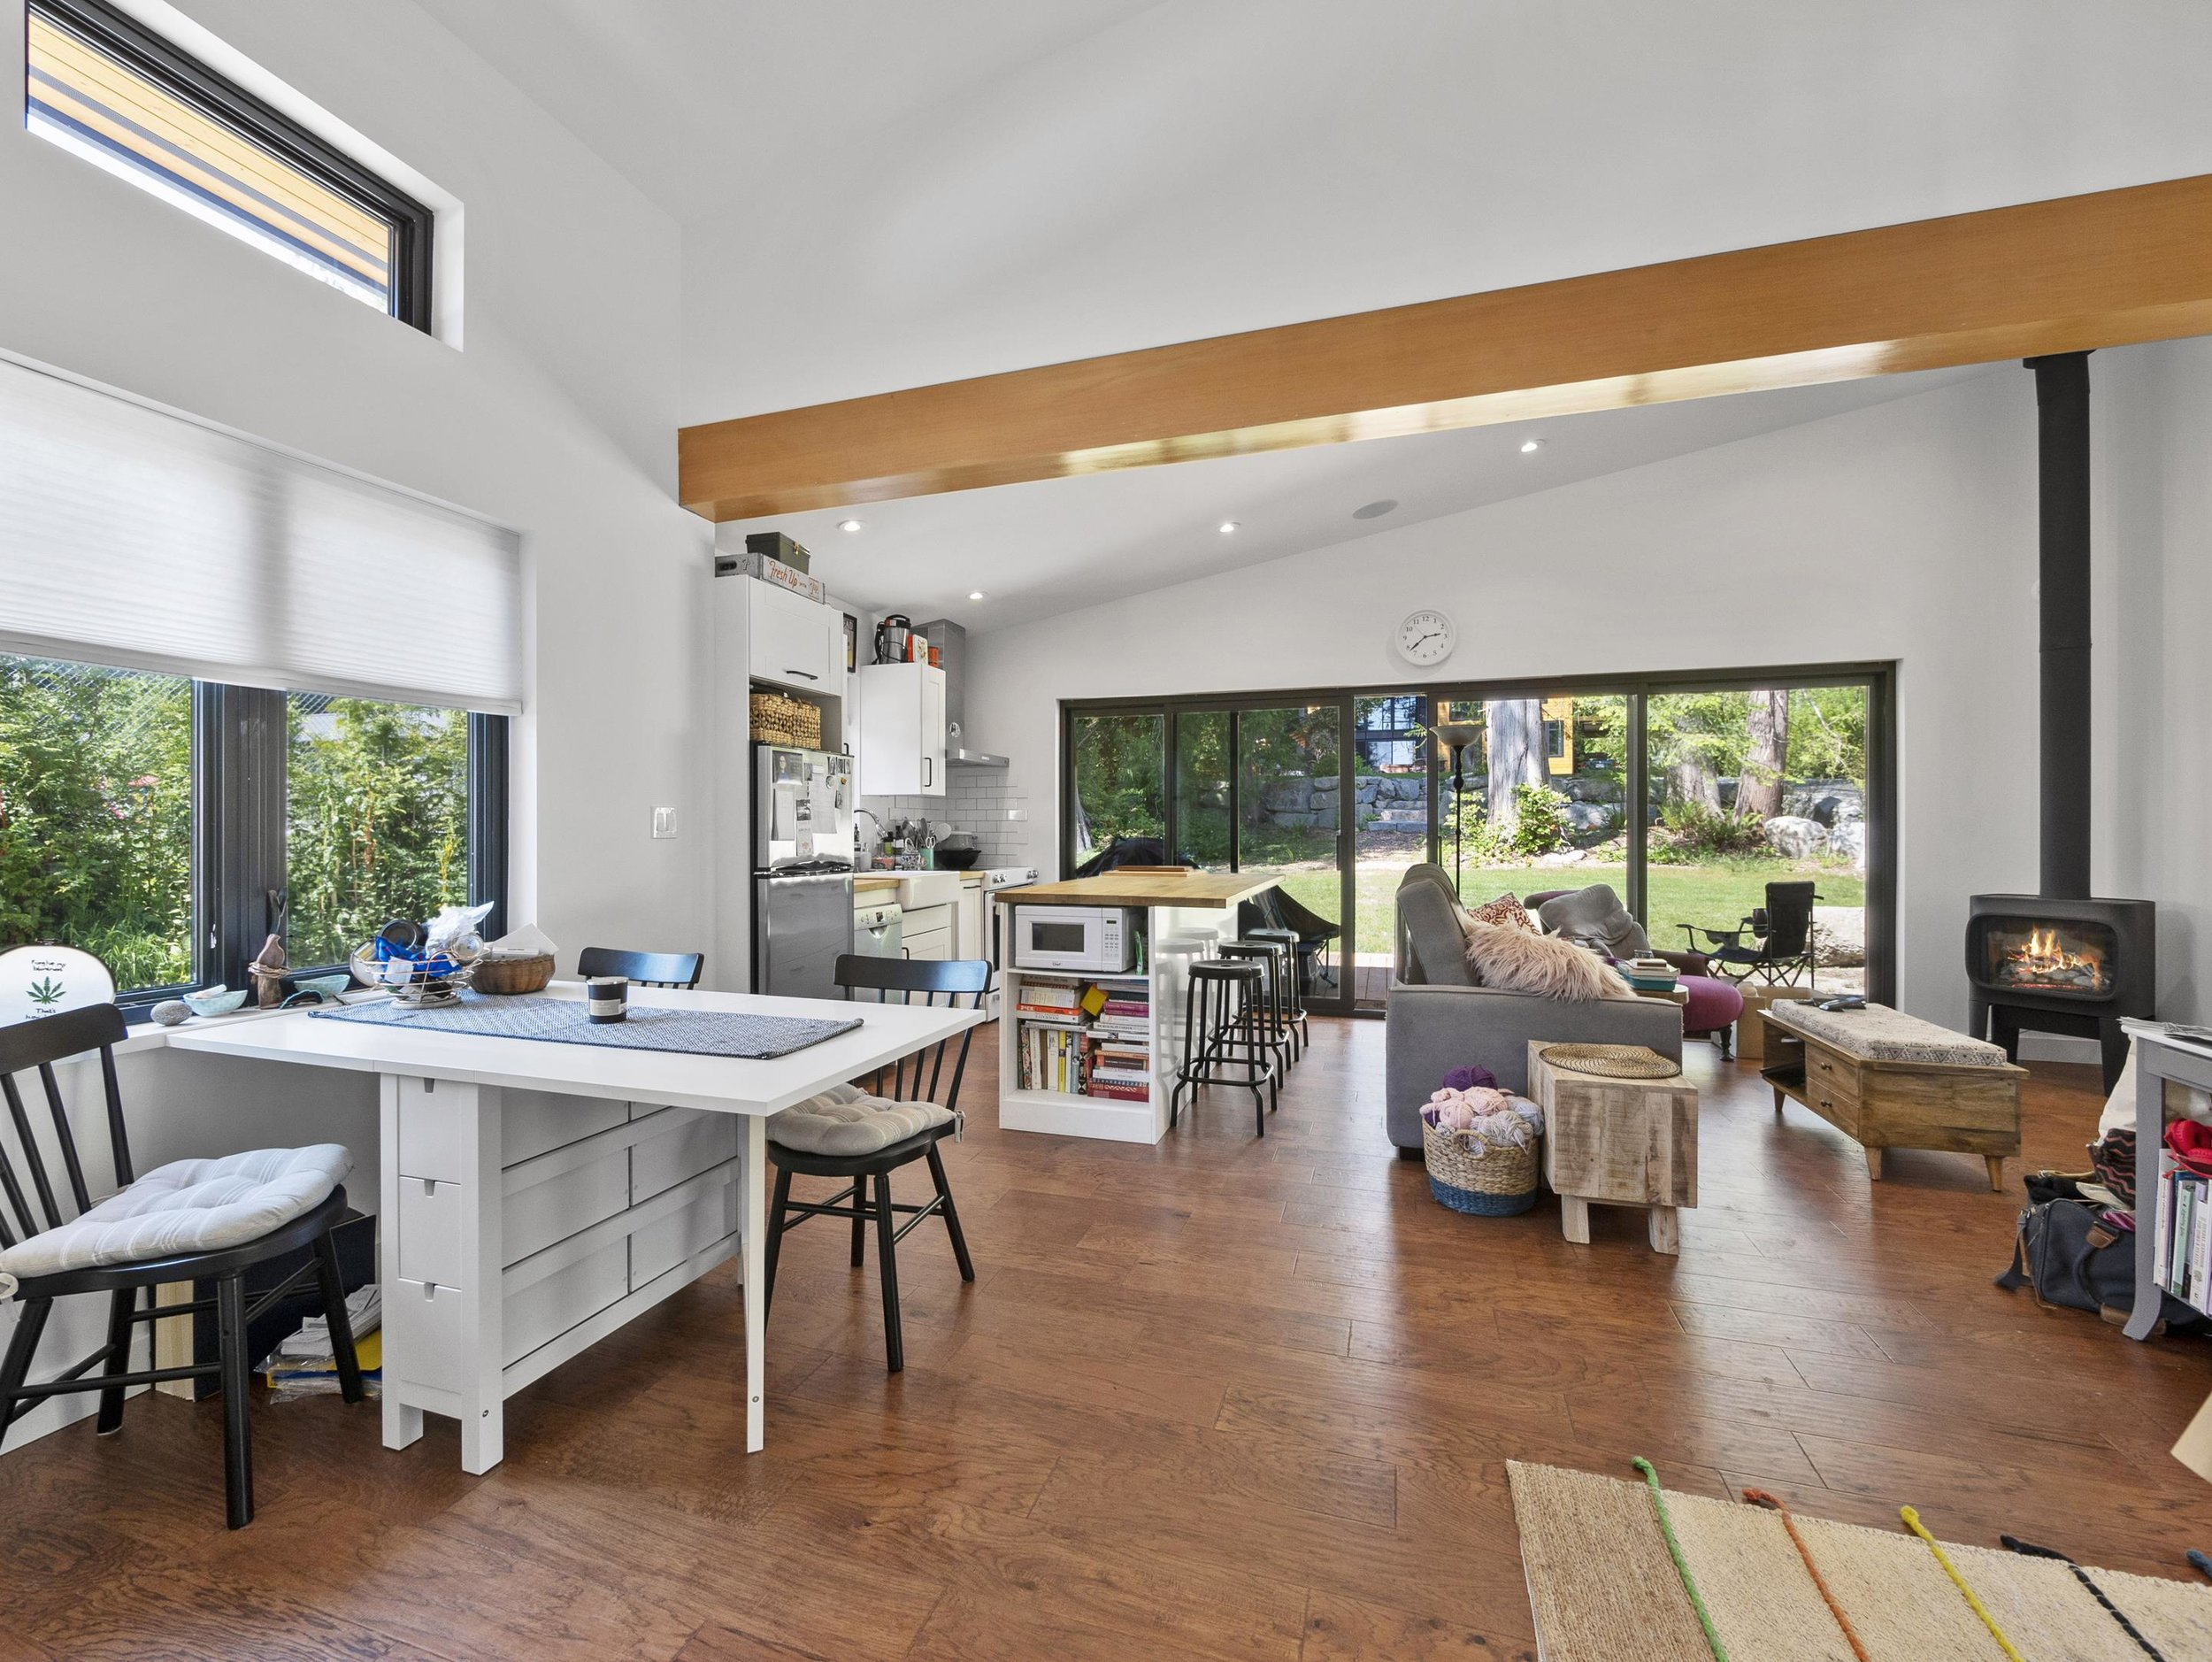 p64 second home, living room, kitchen, patio_MJ.jpg